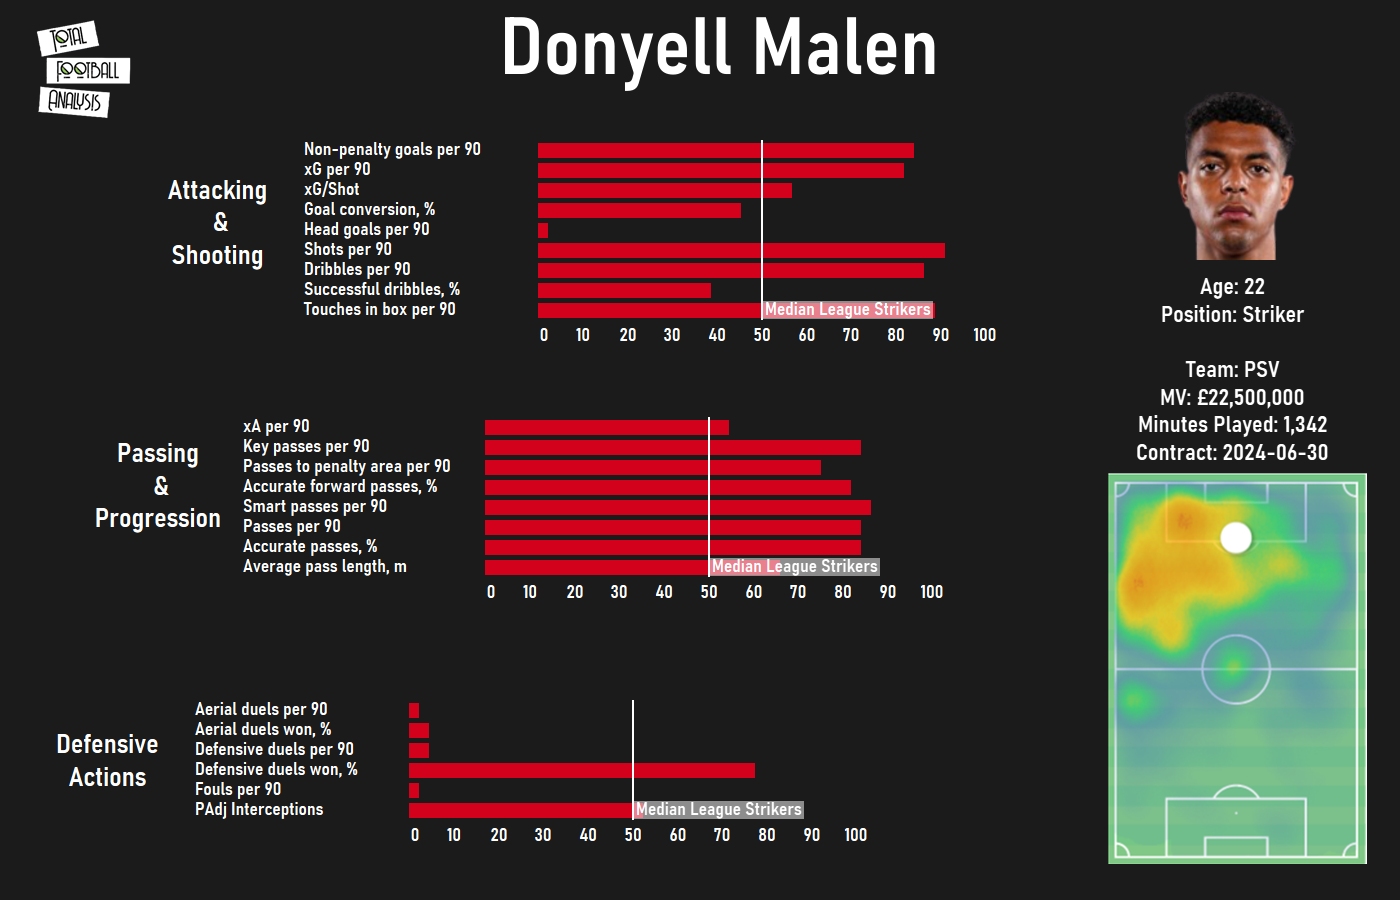 Finding a replacement for Luis Suarez at Barcelona - data analysis - statistics